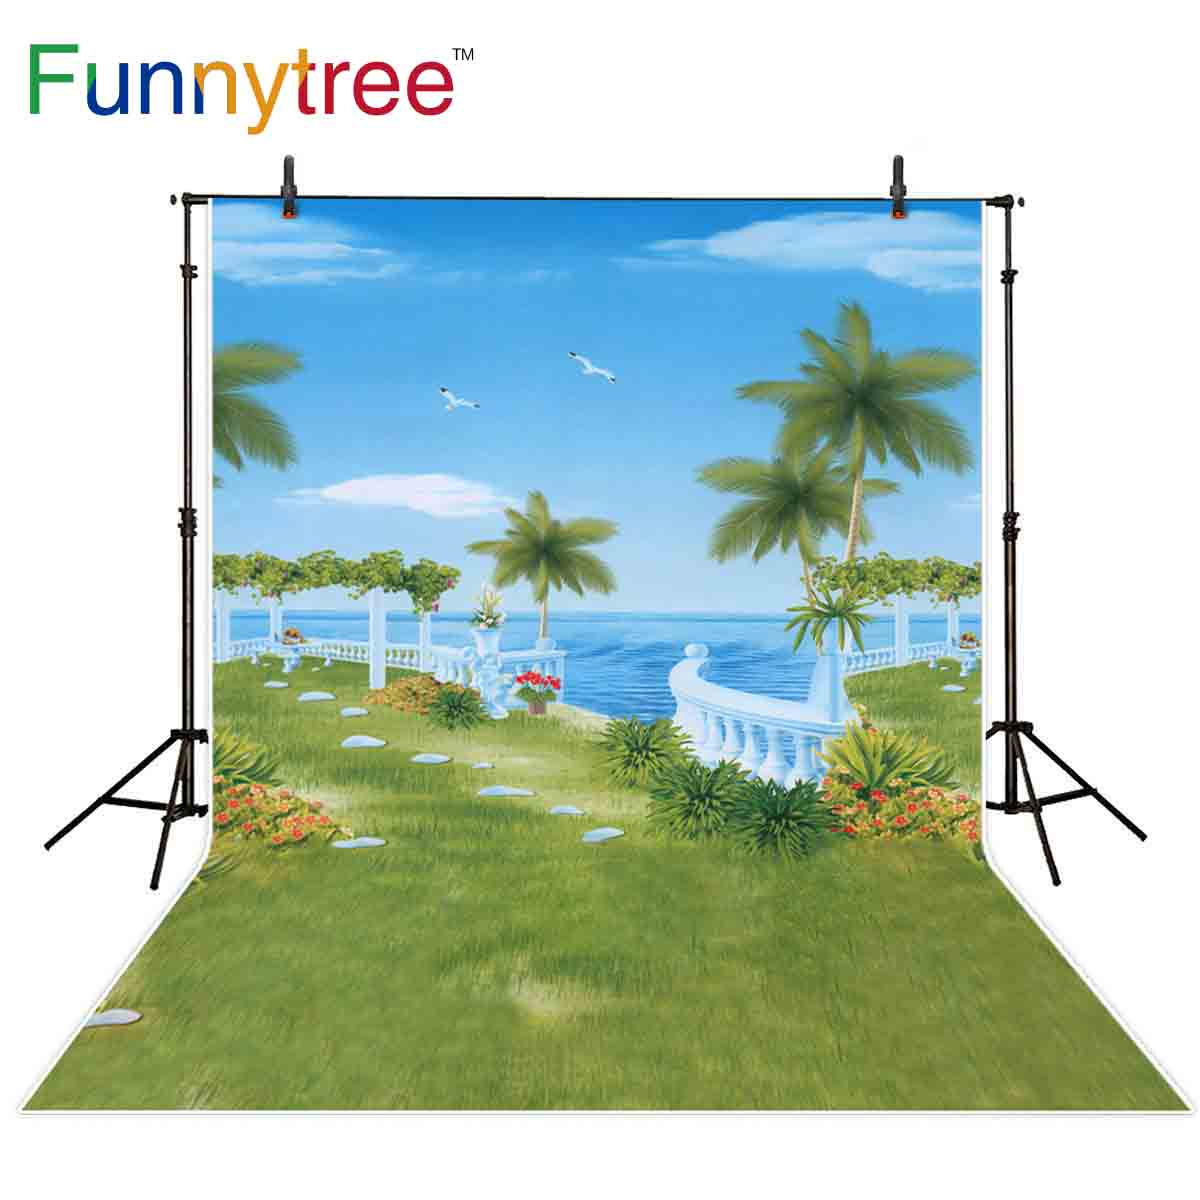 Funnytree summer photo backdrop sea bird trees Waterfront mansion lawn holiday natural scenery background photogtaphy photophone image